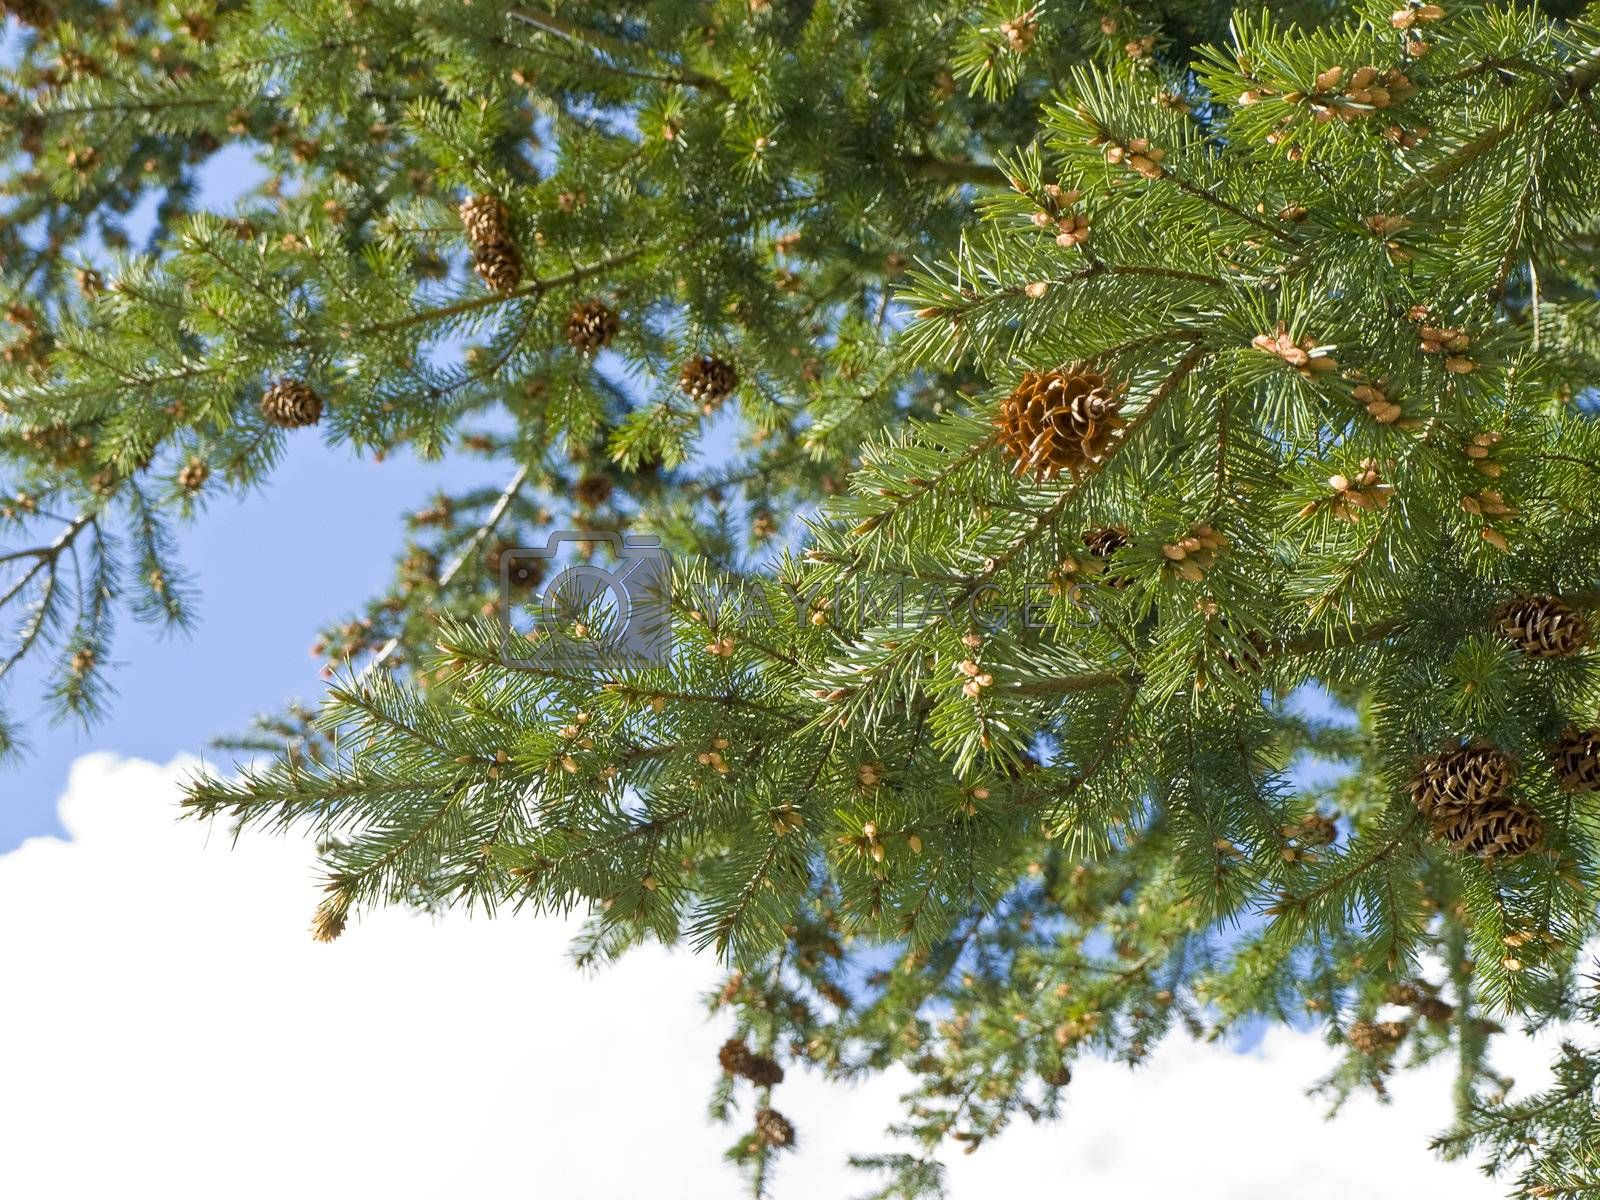 Branches of the pine tree with new strobiles against the blue sky